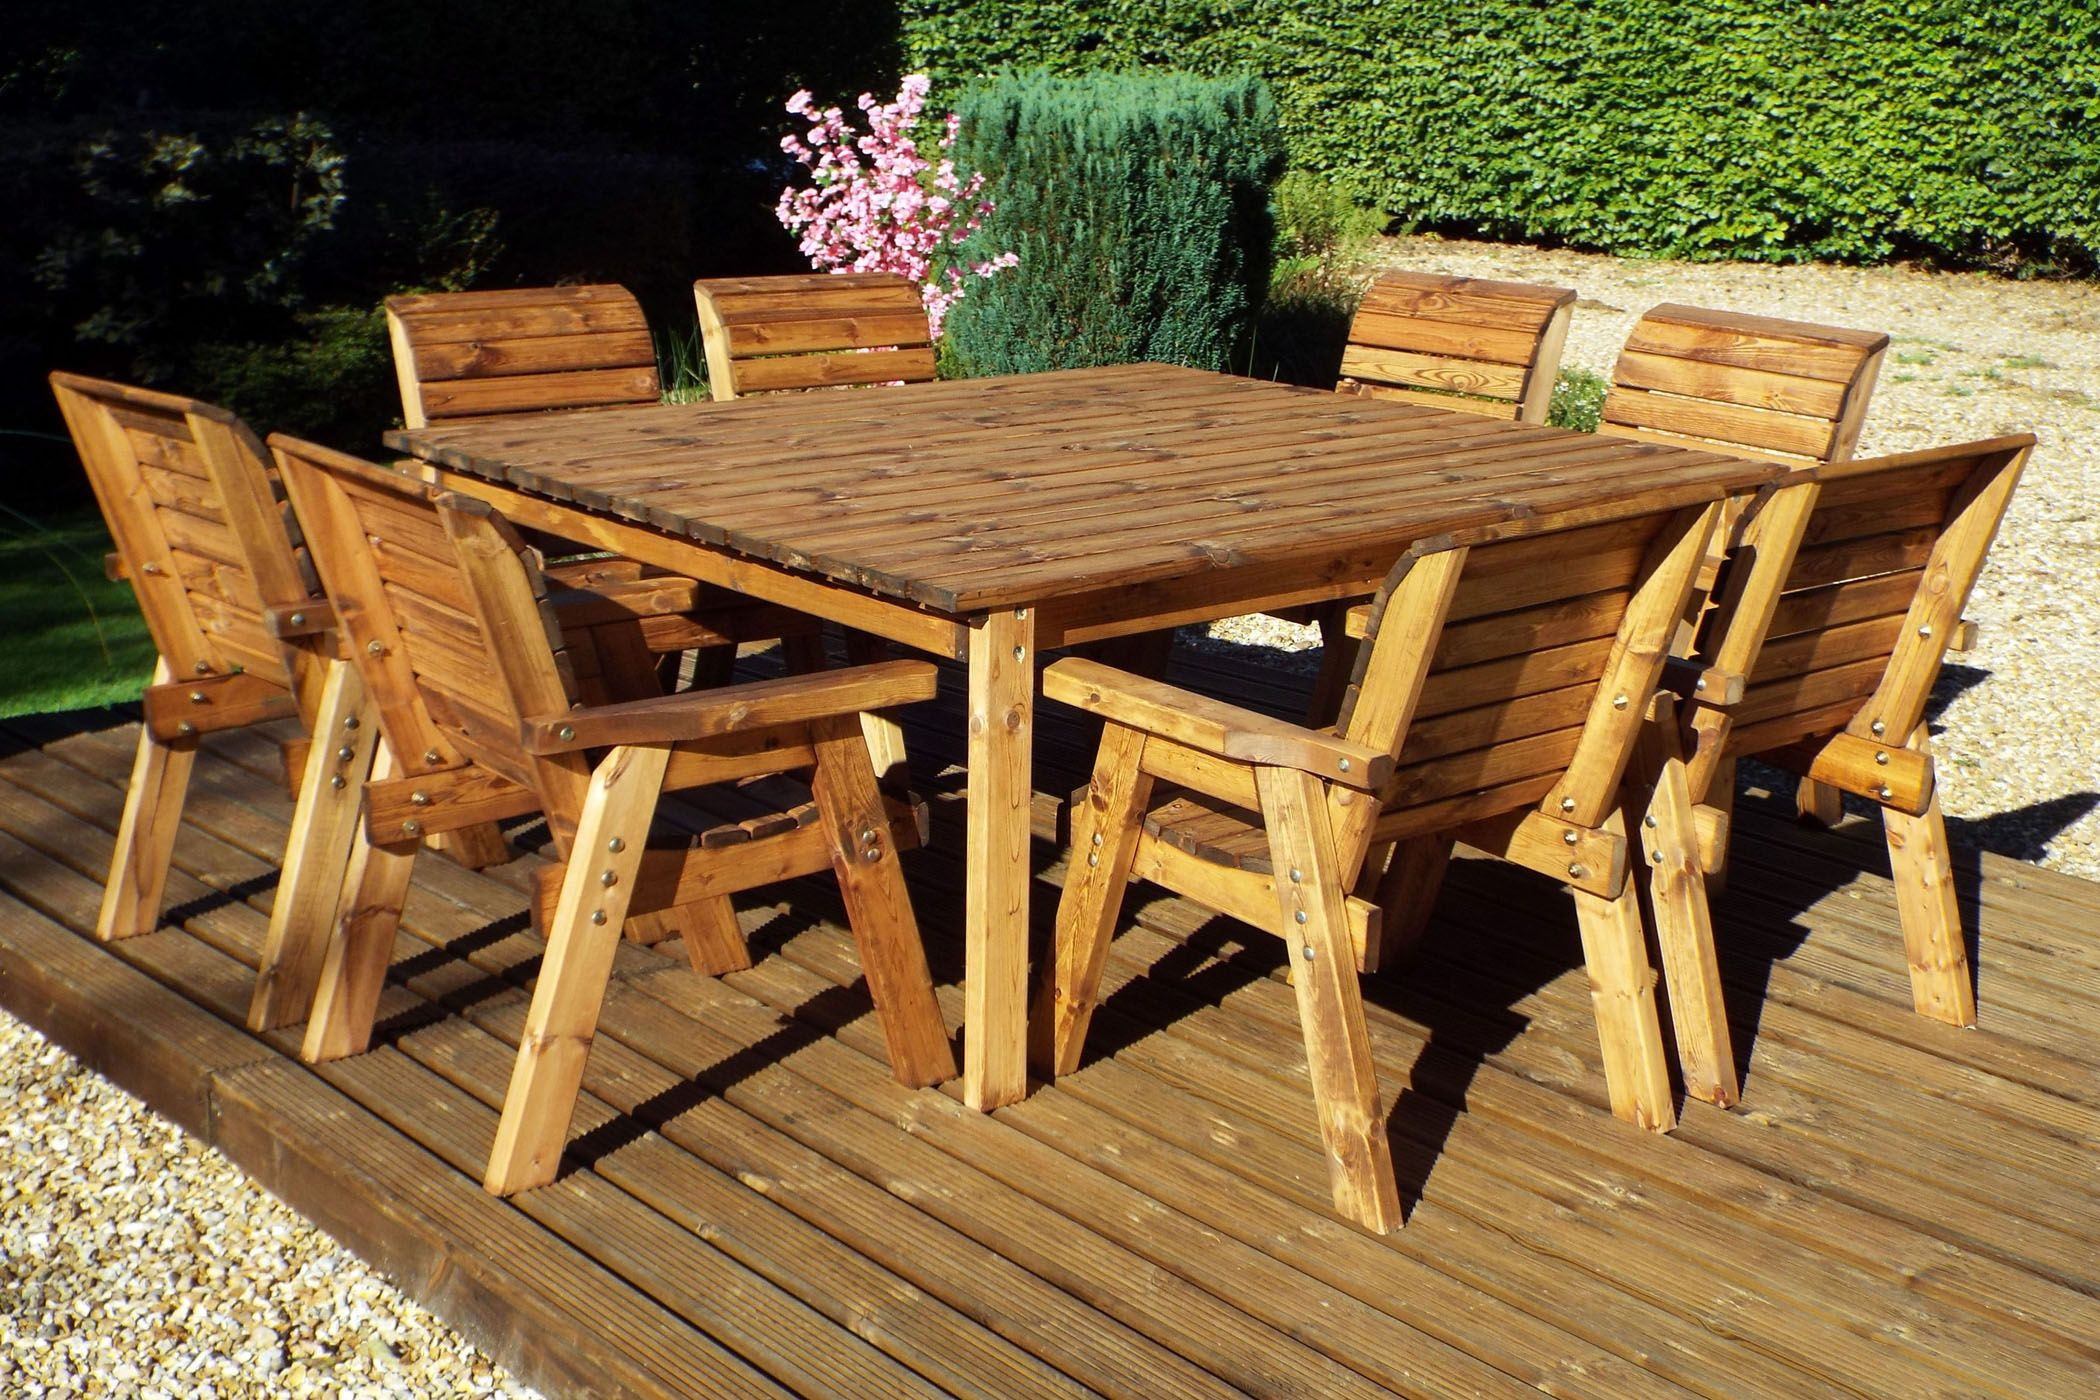 Wood Outdoor Dining Table Set